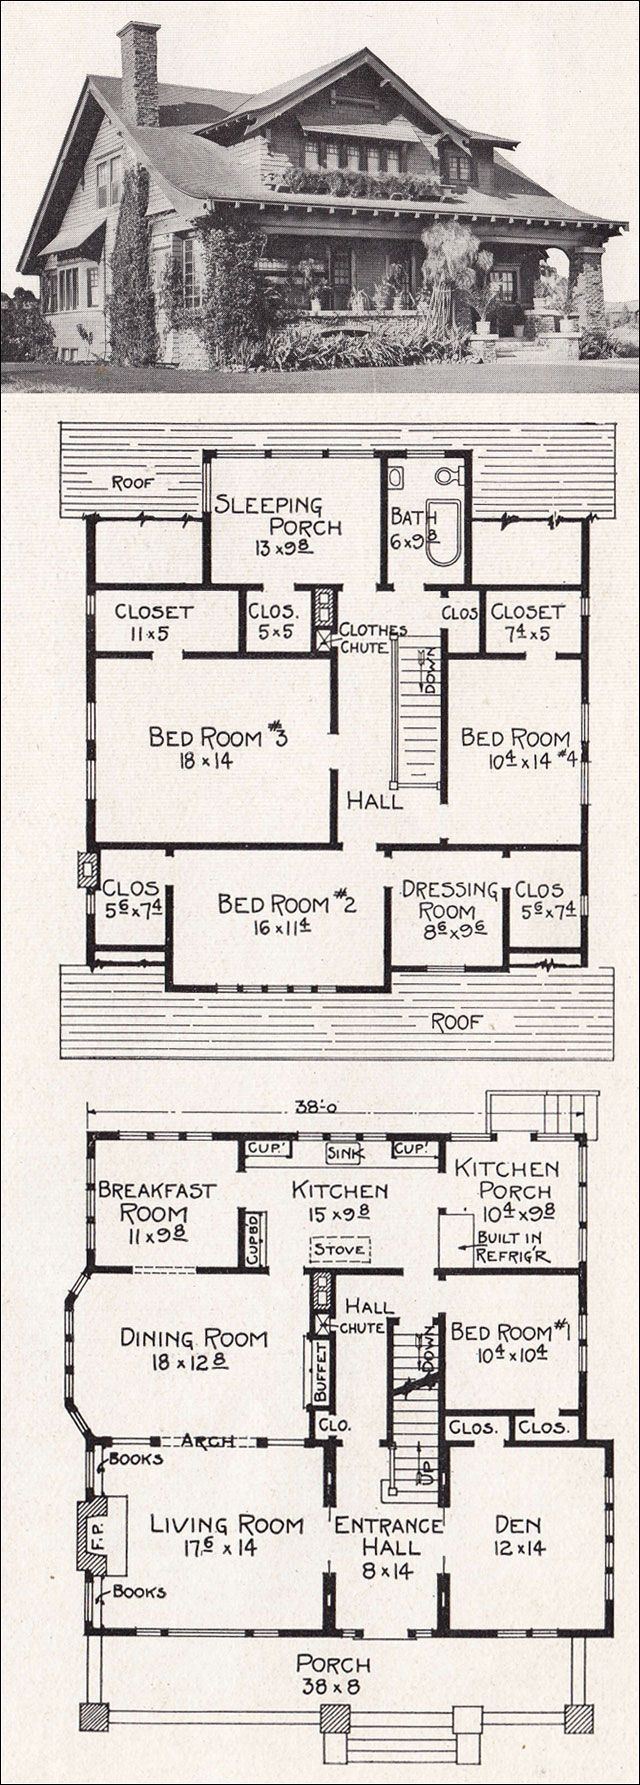 Vintage bungalow house plan architectural illustrations for House plans with sleeping porch